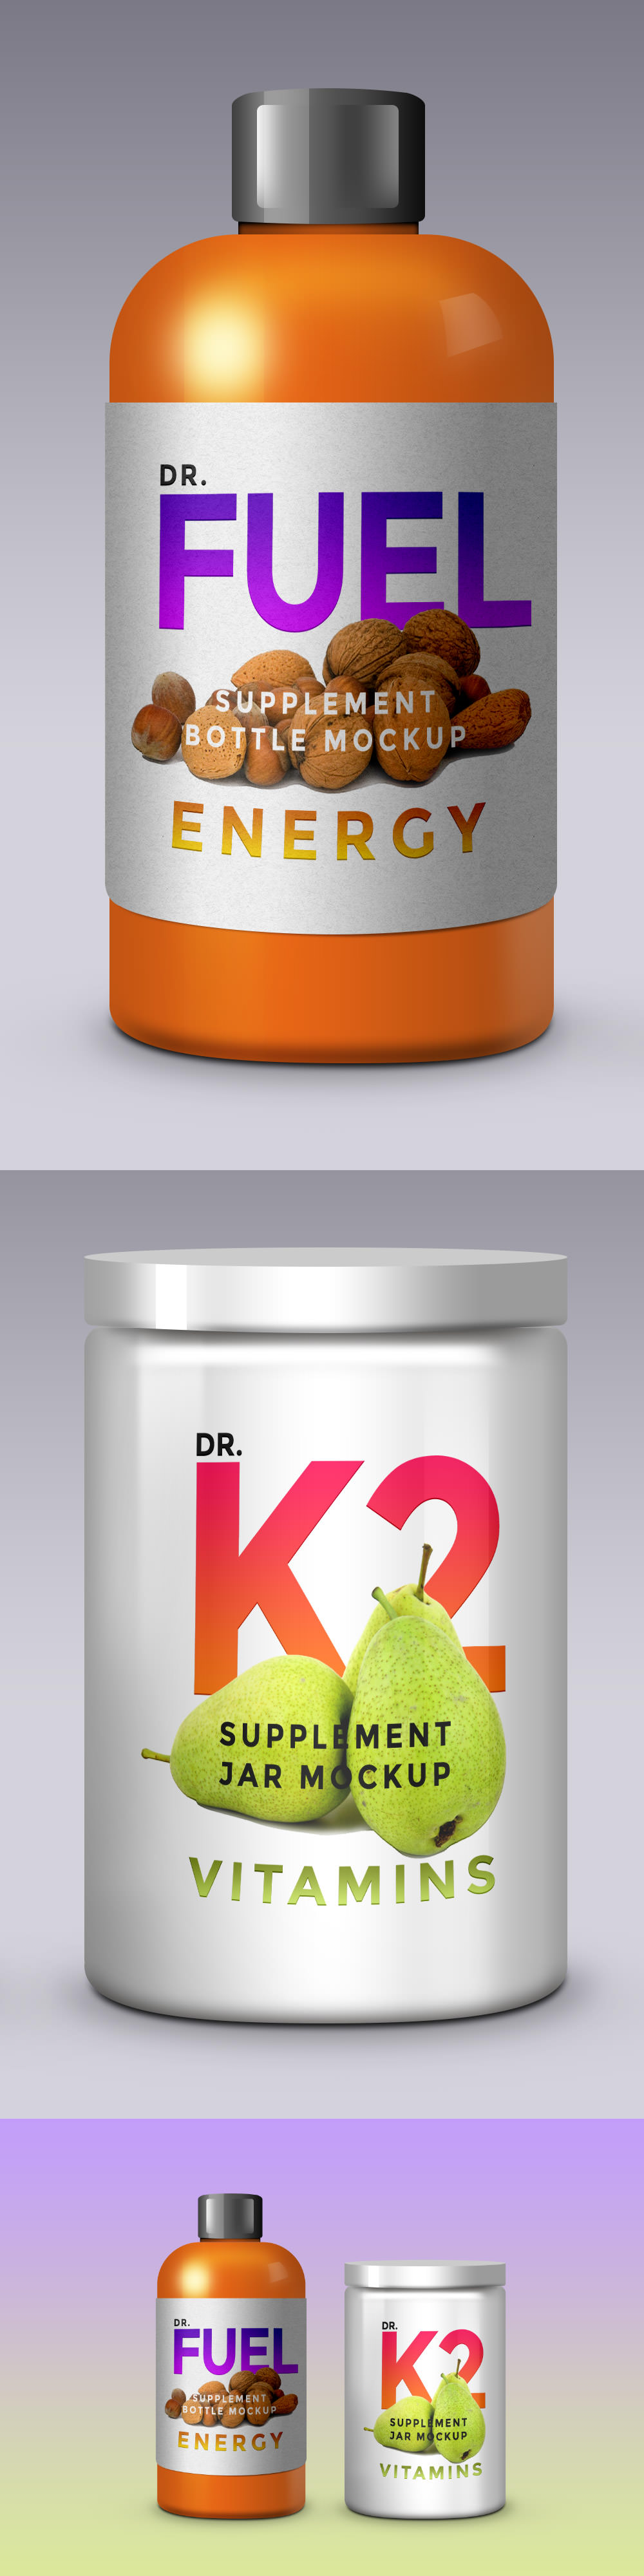 Supplement Product Packaging Mockup